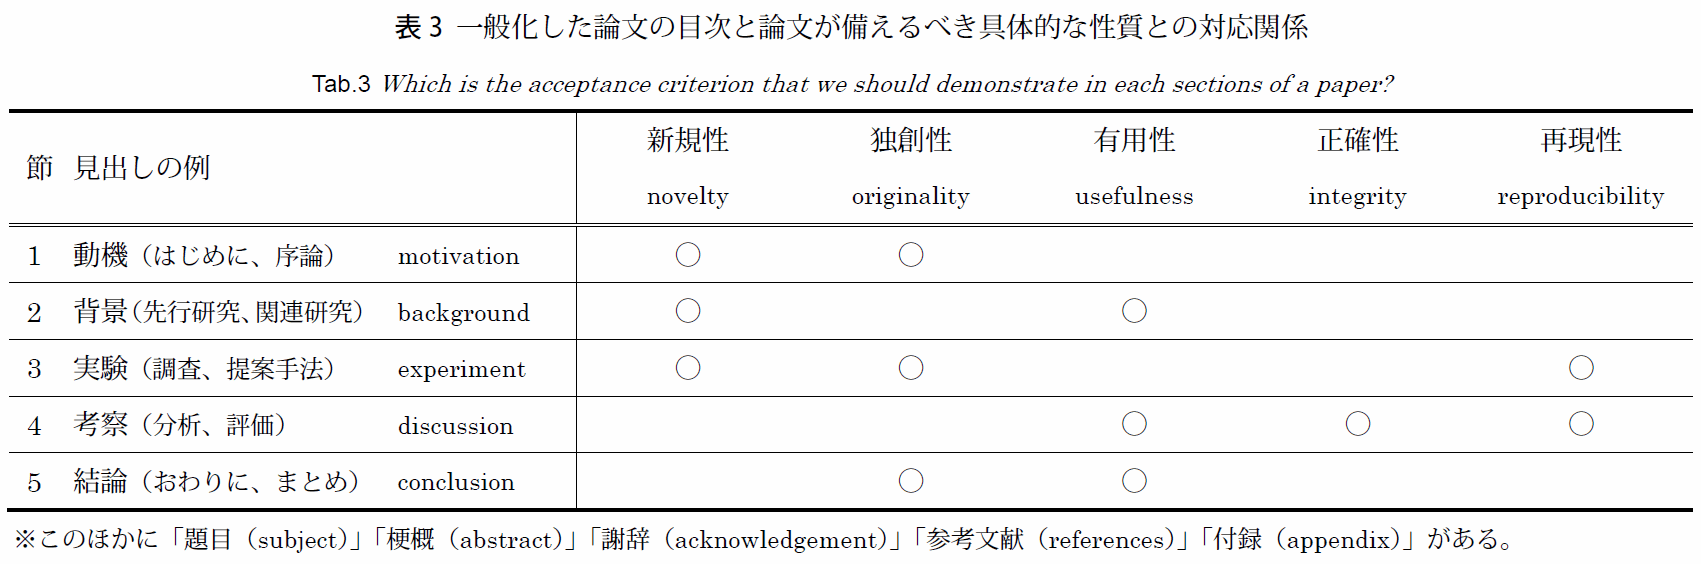 https://neorail.jp/reports/20170128_A_Survey_of_Recent_JIYUU-KENKYU_in_Japan/preview_table3.png